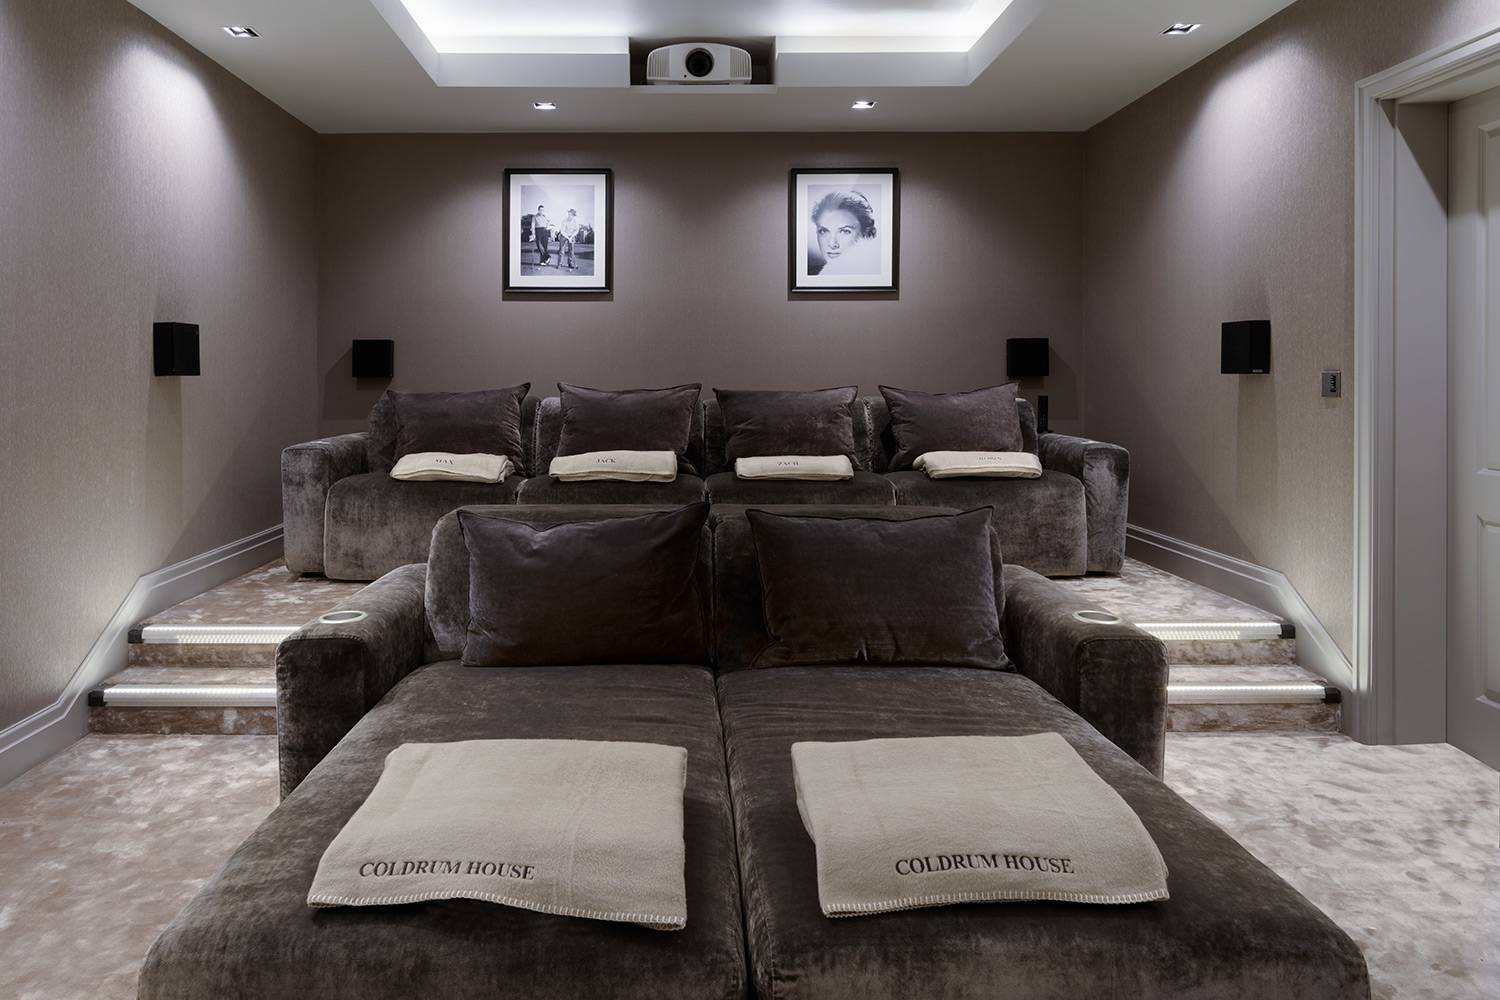 luxury home cinema seating home cinema installation home cinema